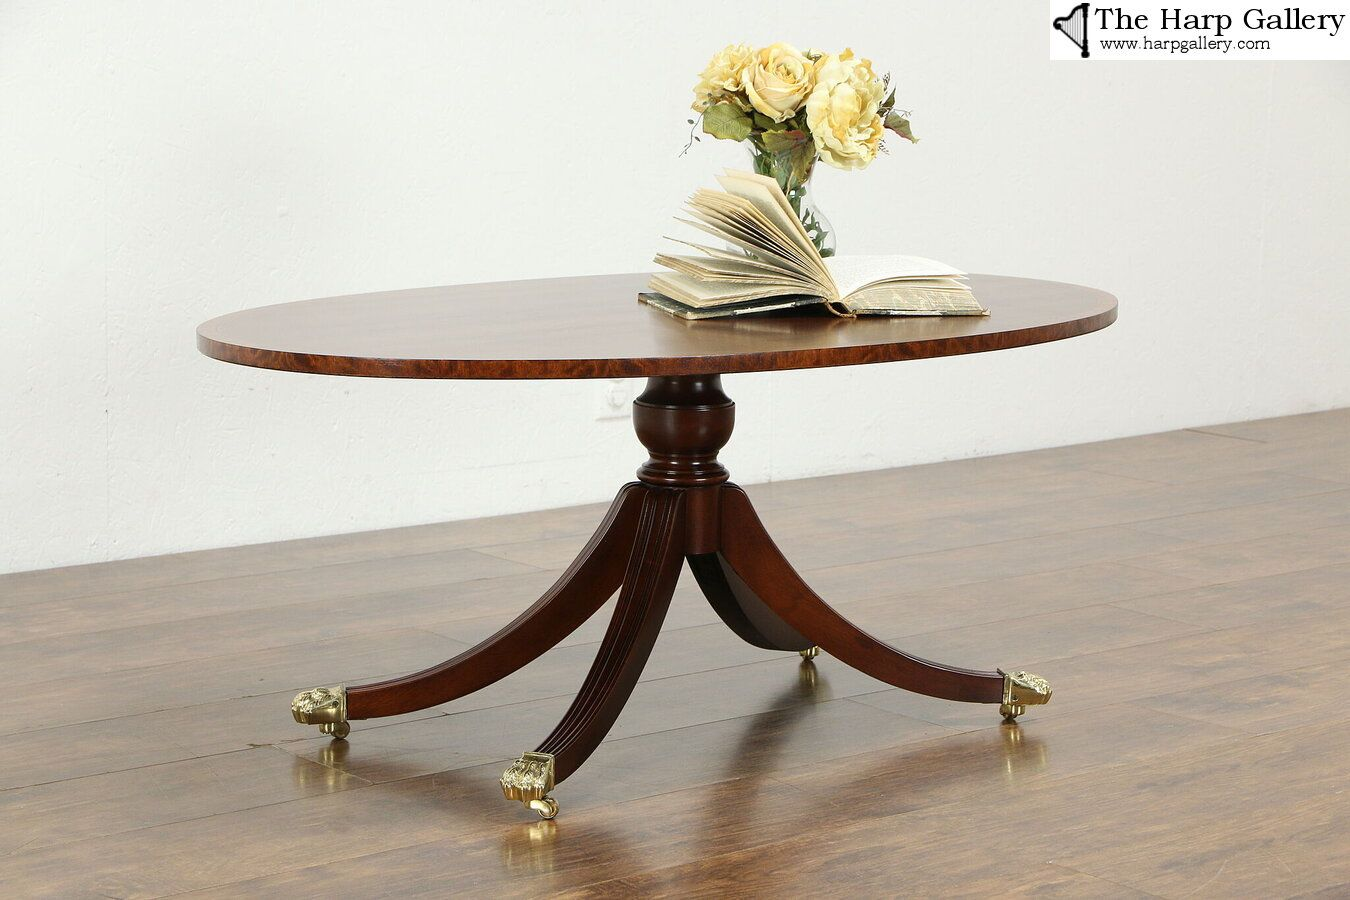 Traditional Vintage Oval Coffee Table Banded Mahogany Signed Councill 34786 Oval Coffee Tables Vintage Living Room Furniture Coffee Table [ 900 x 1350 Pixel ]